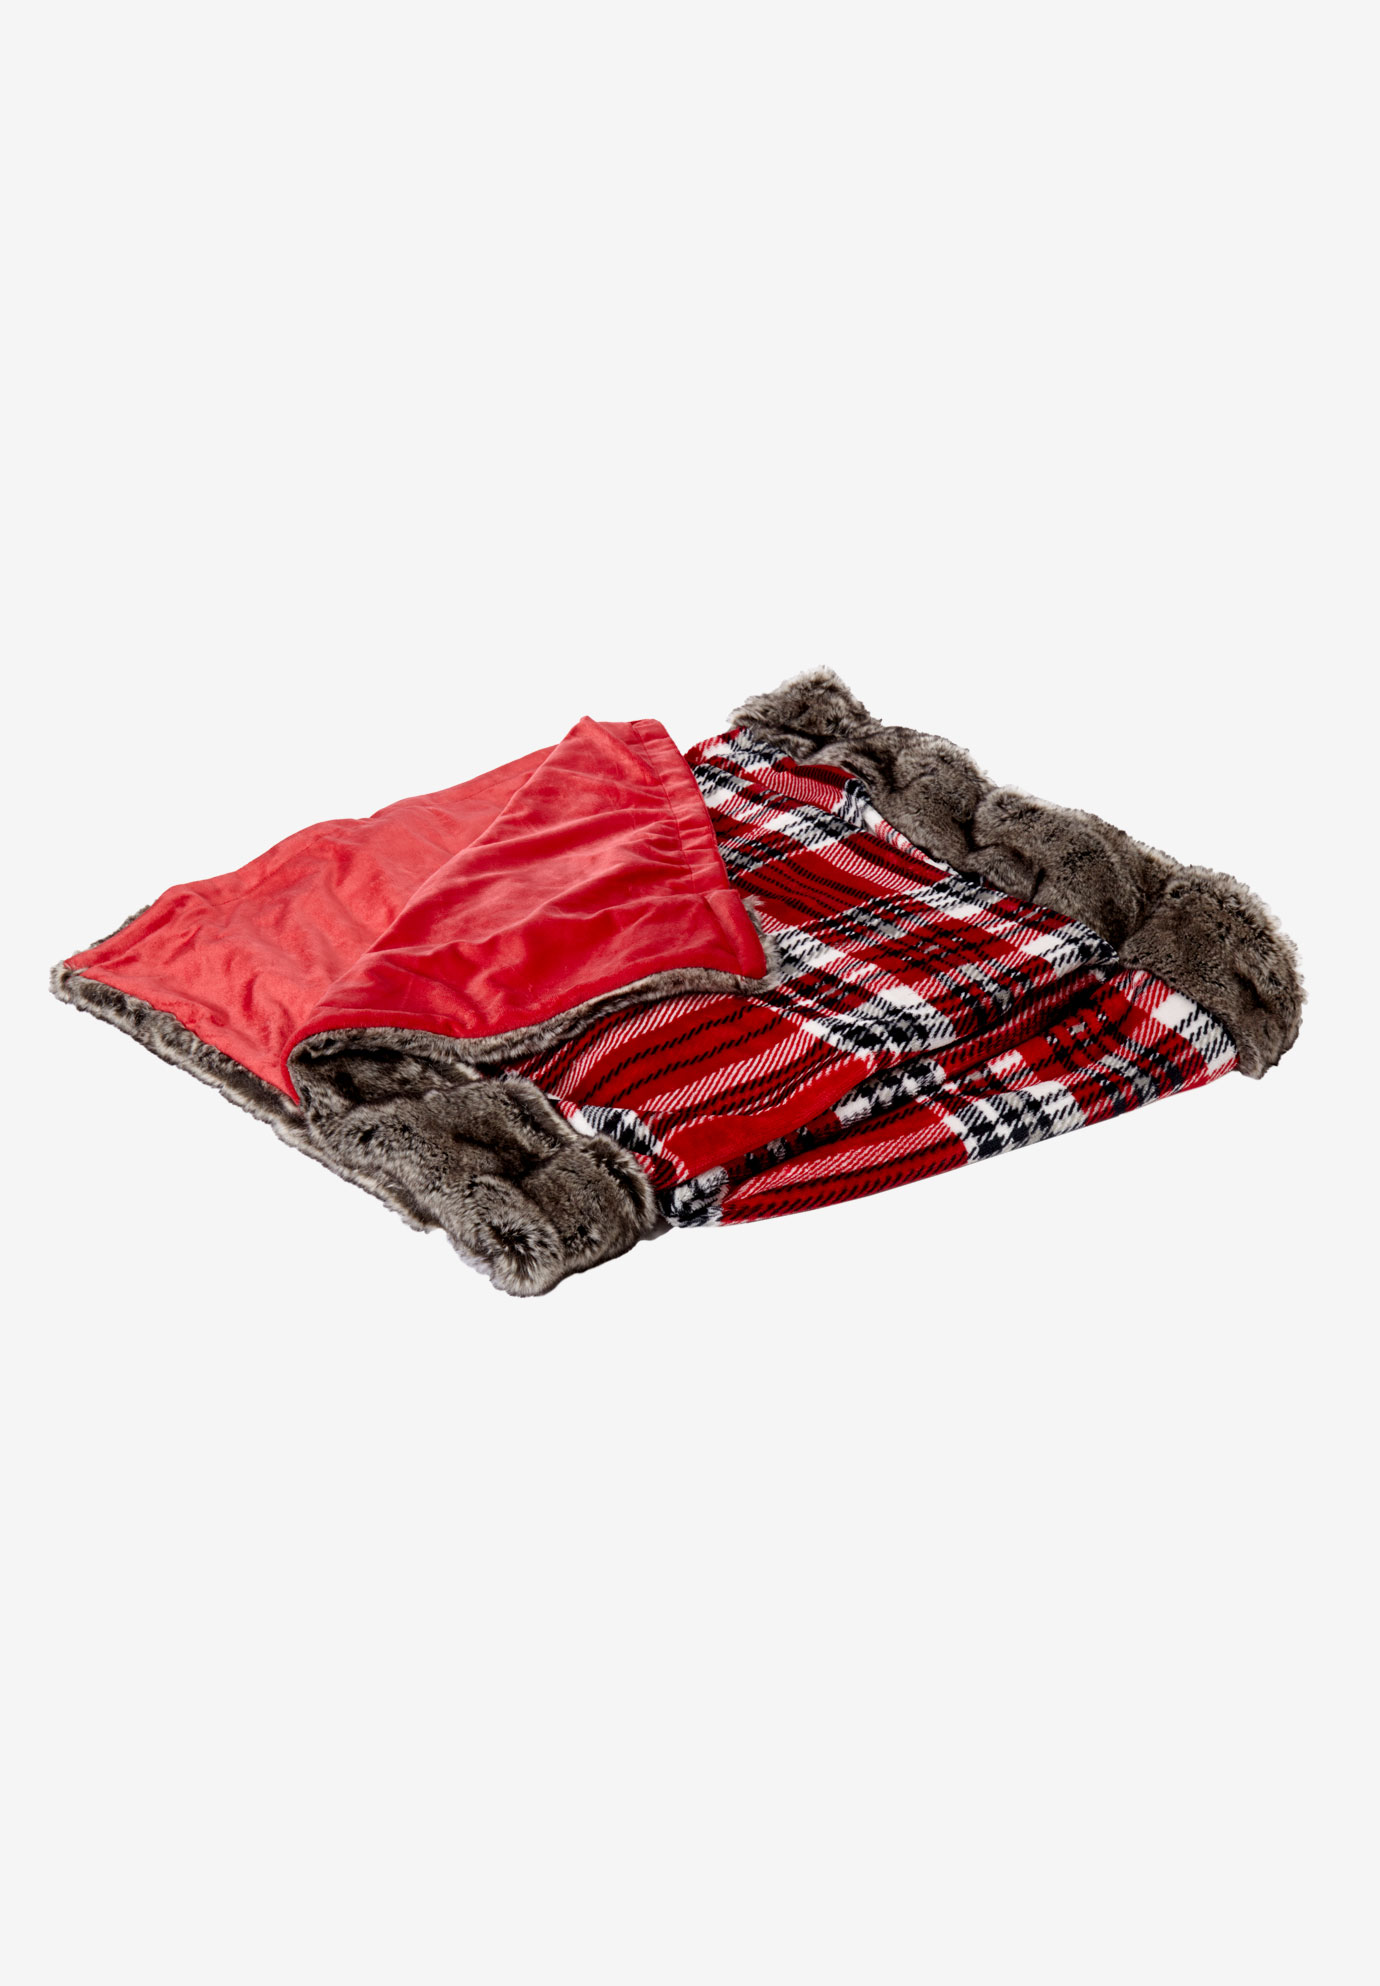 Plaid 2-Piece Pillow & Throw Set, PLAID